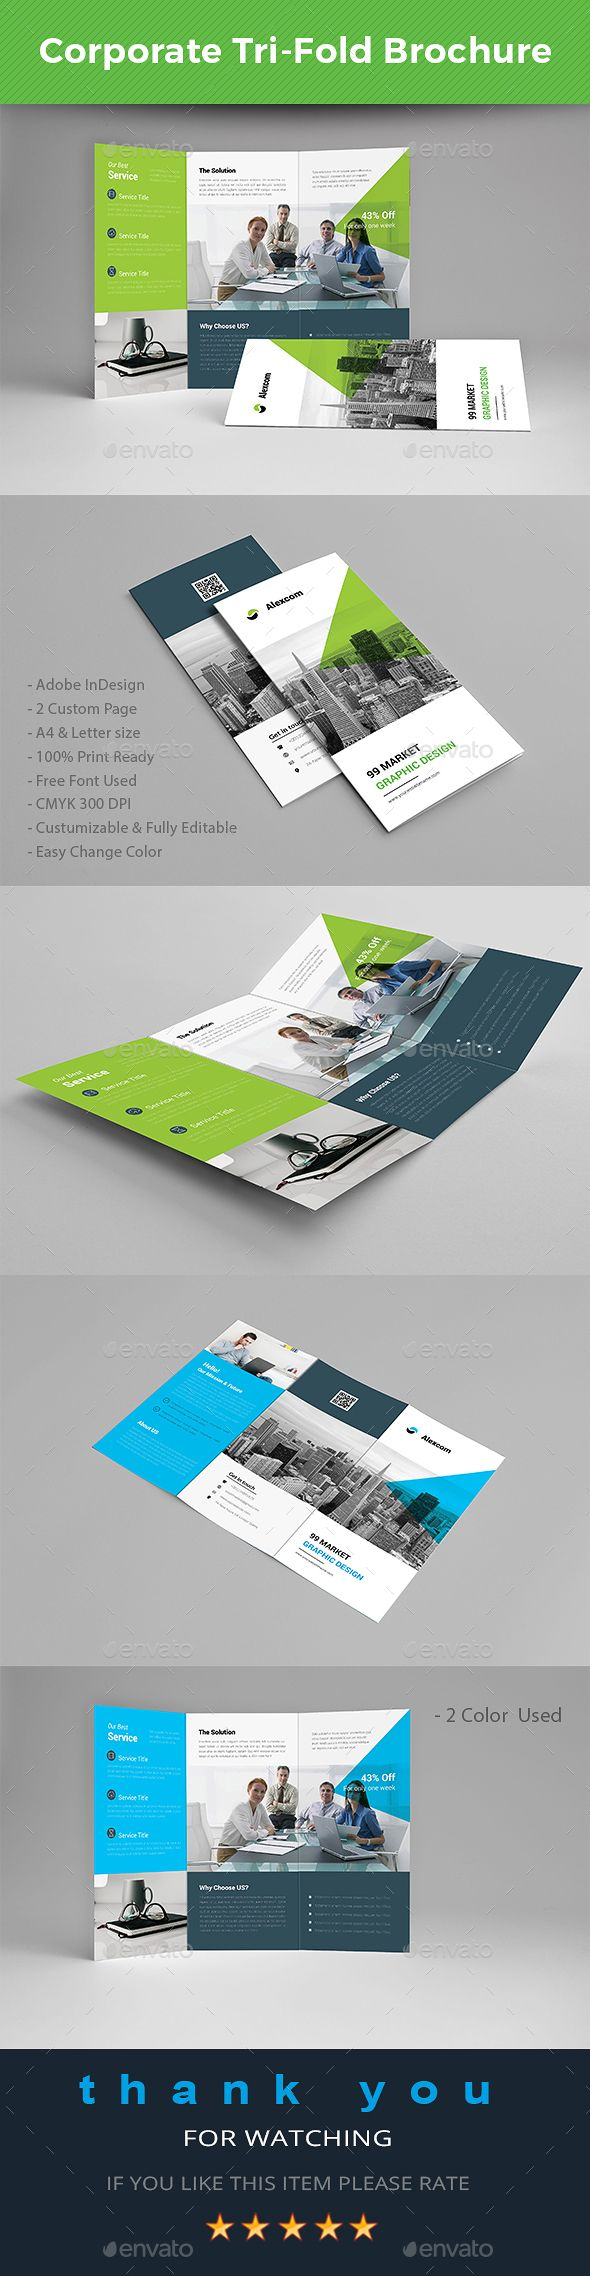 481 best brochure inspiration images on pinterest for Letter size brochure template